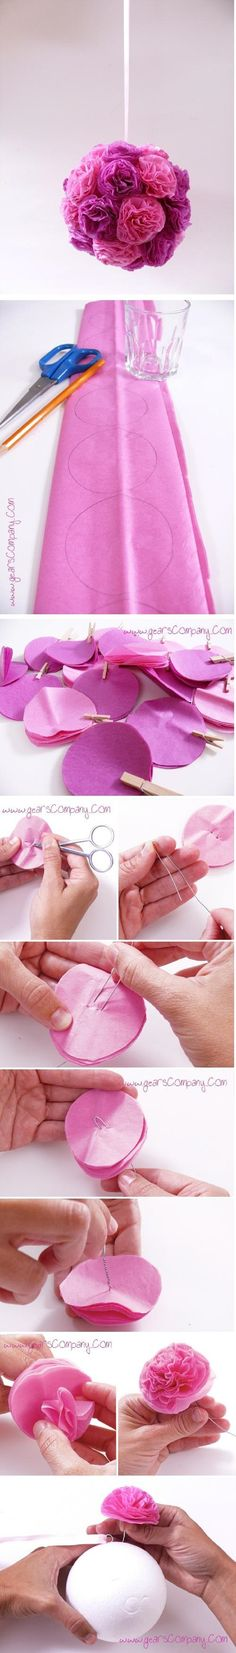 DIY Paper Flower Tutorial - 15 Whimsical DIY Party Decoration Tutorials…